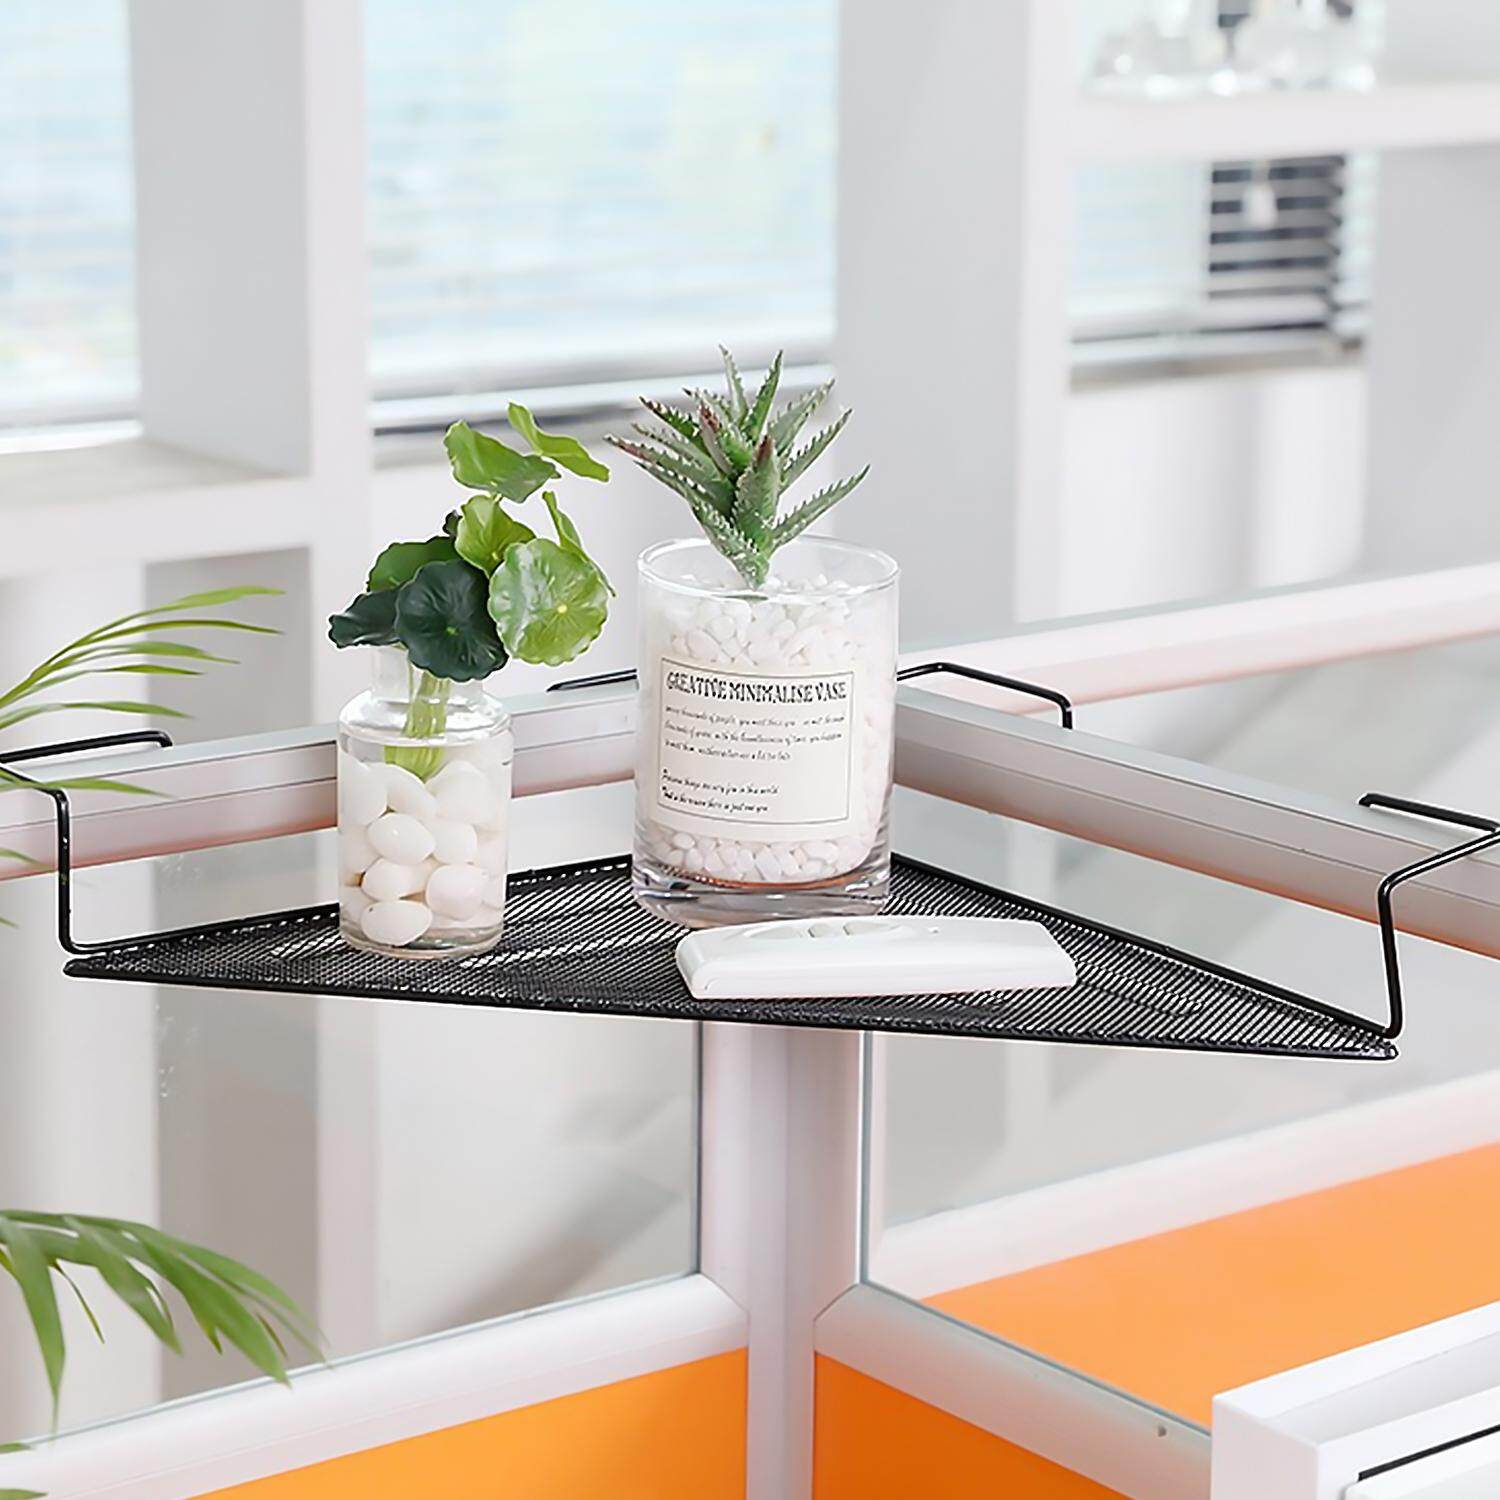 Fashion Triangle Iron Wire Balcony Office Cubicle Corner Storage Rack Shelf For Books Pens Telephone Plants Flower Pots Picture Frames